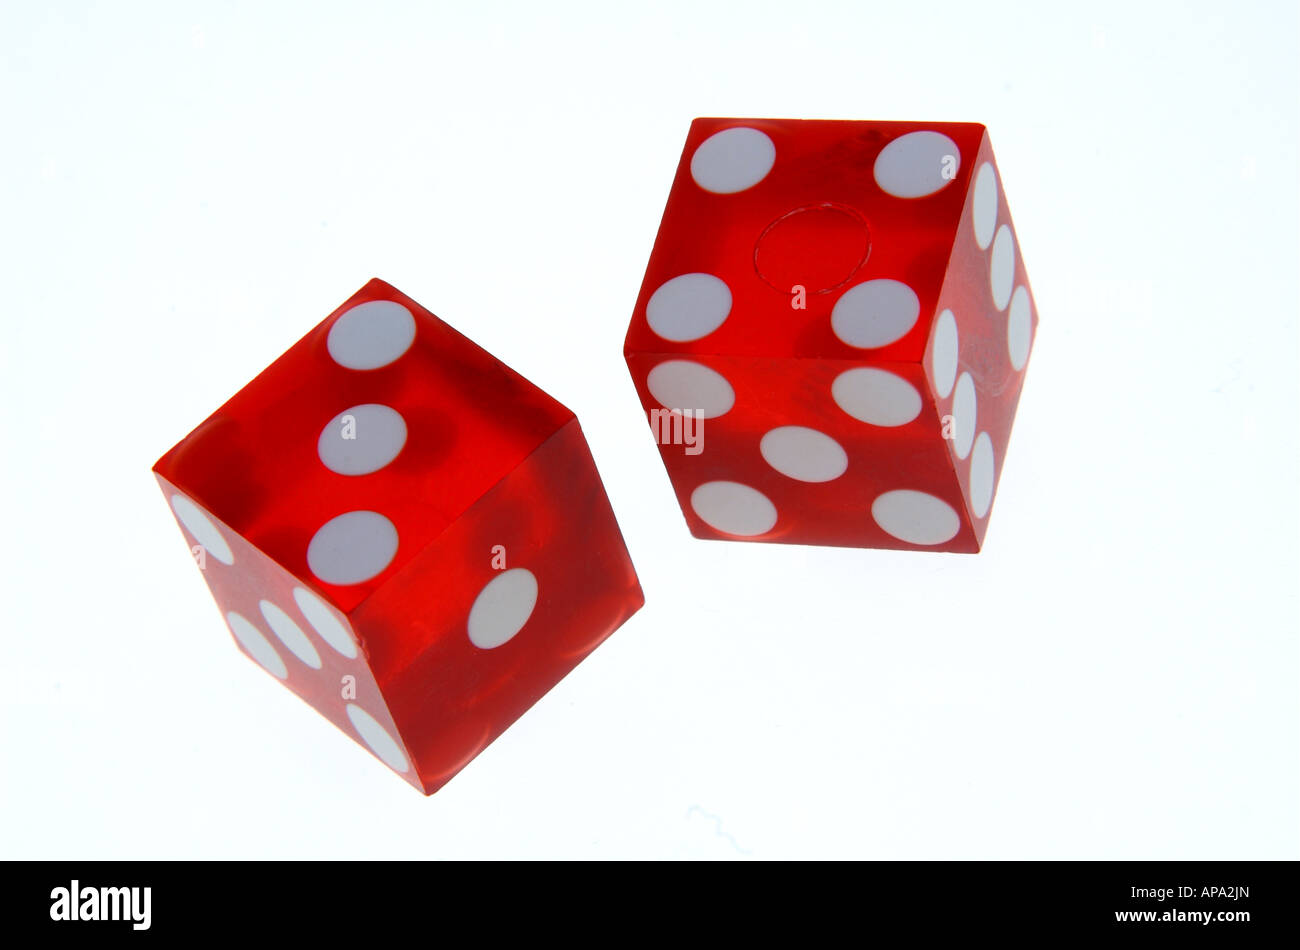 red dice showing lucky seven score - Stock Image